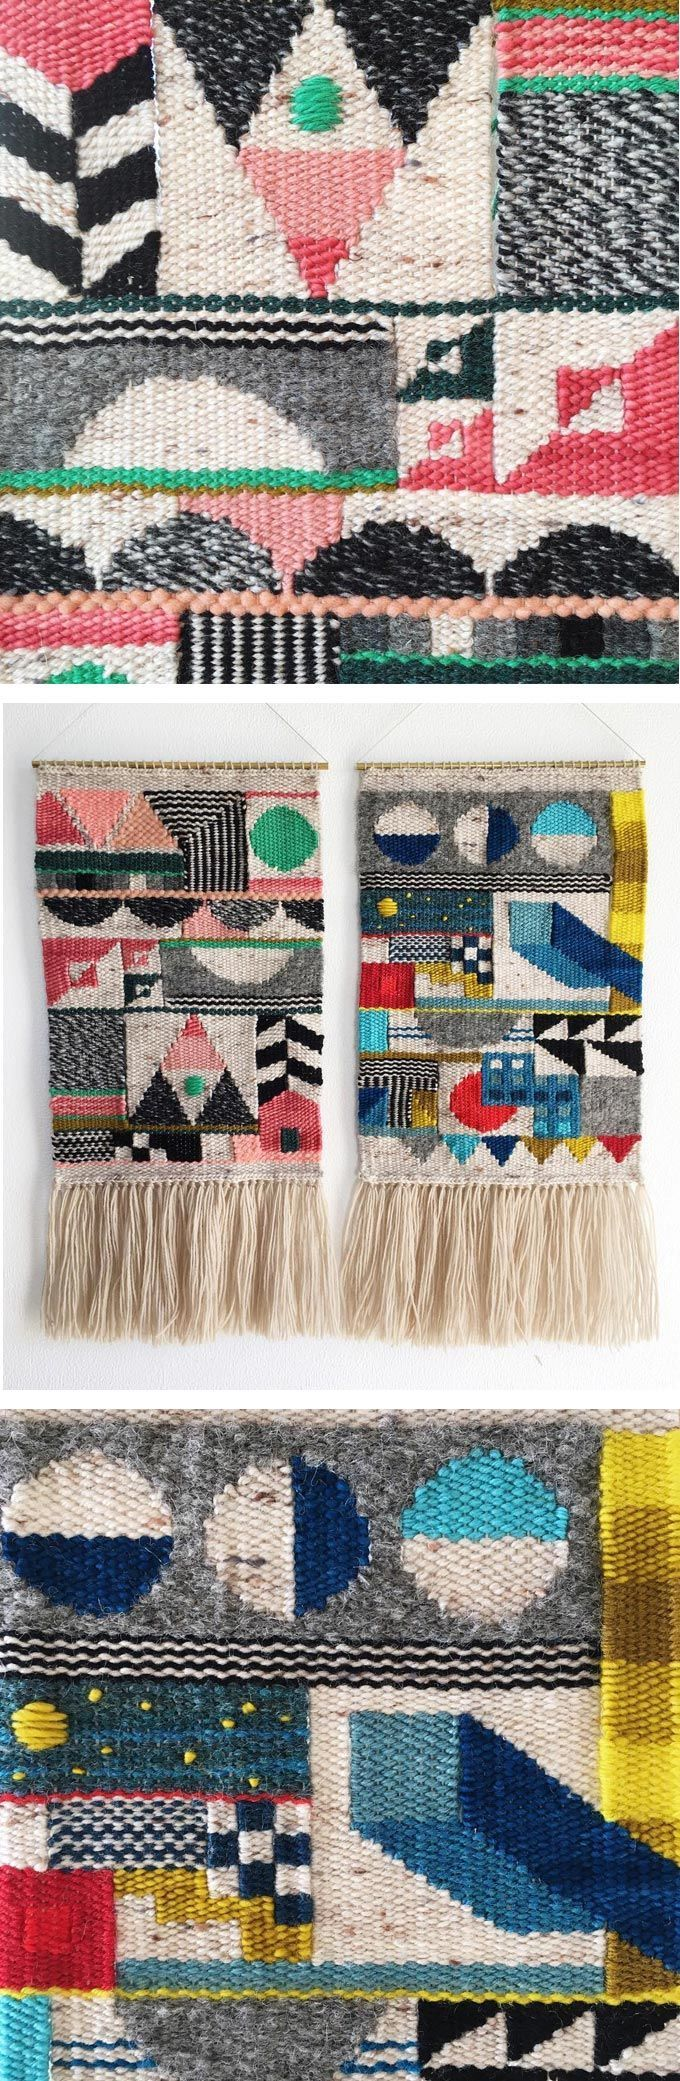 Genevieve Griffiths weaves abstract wall hangings inspired by architectural…